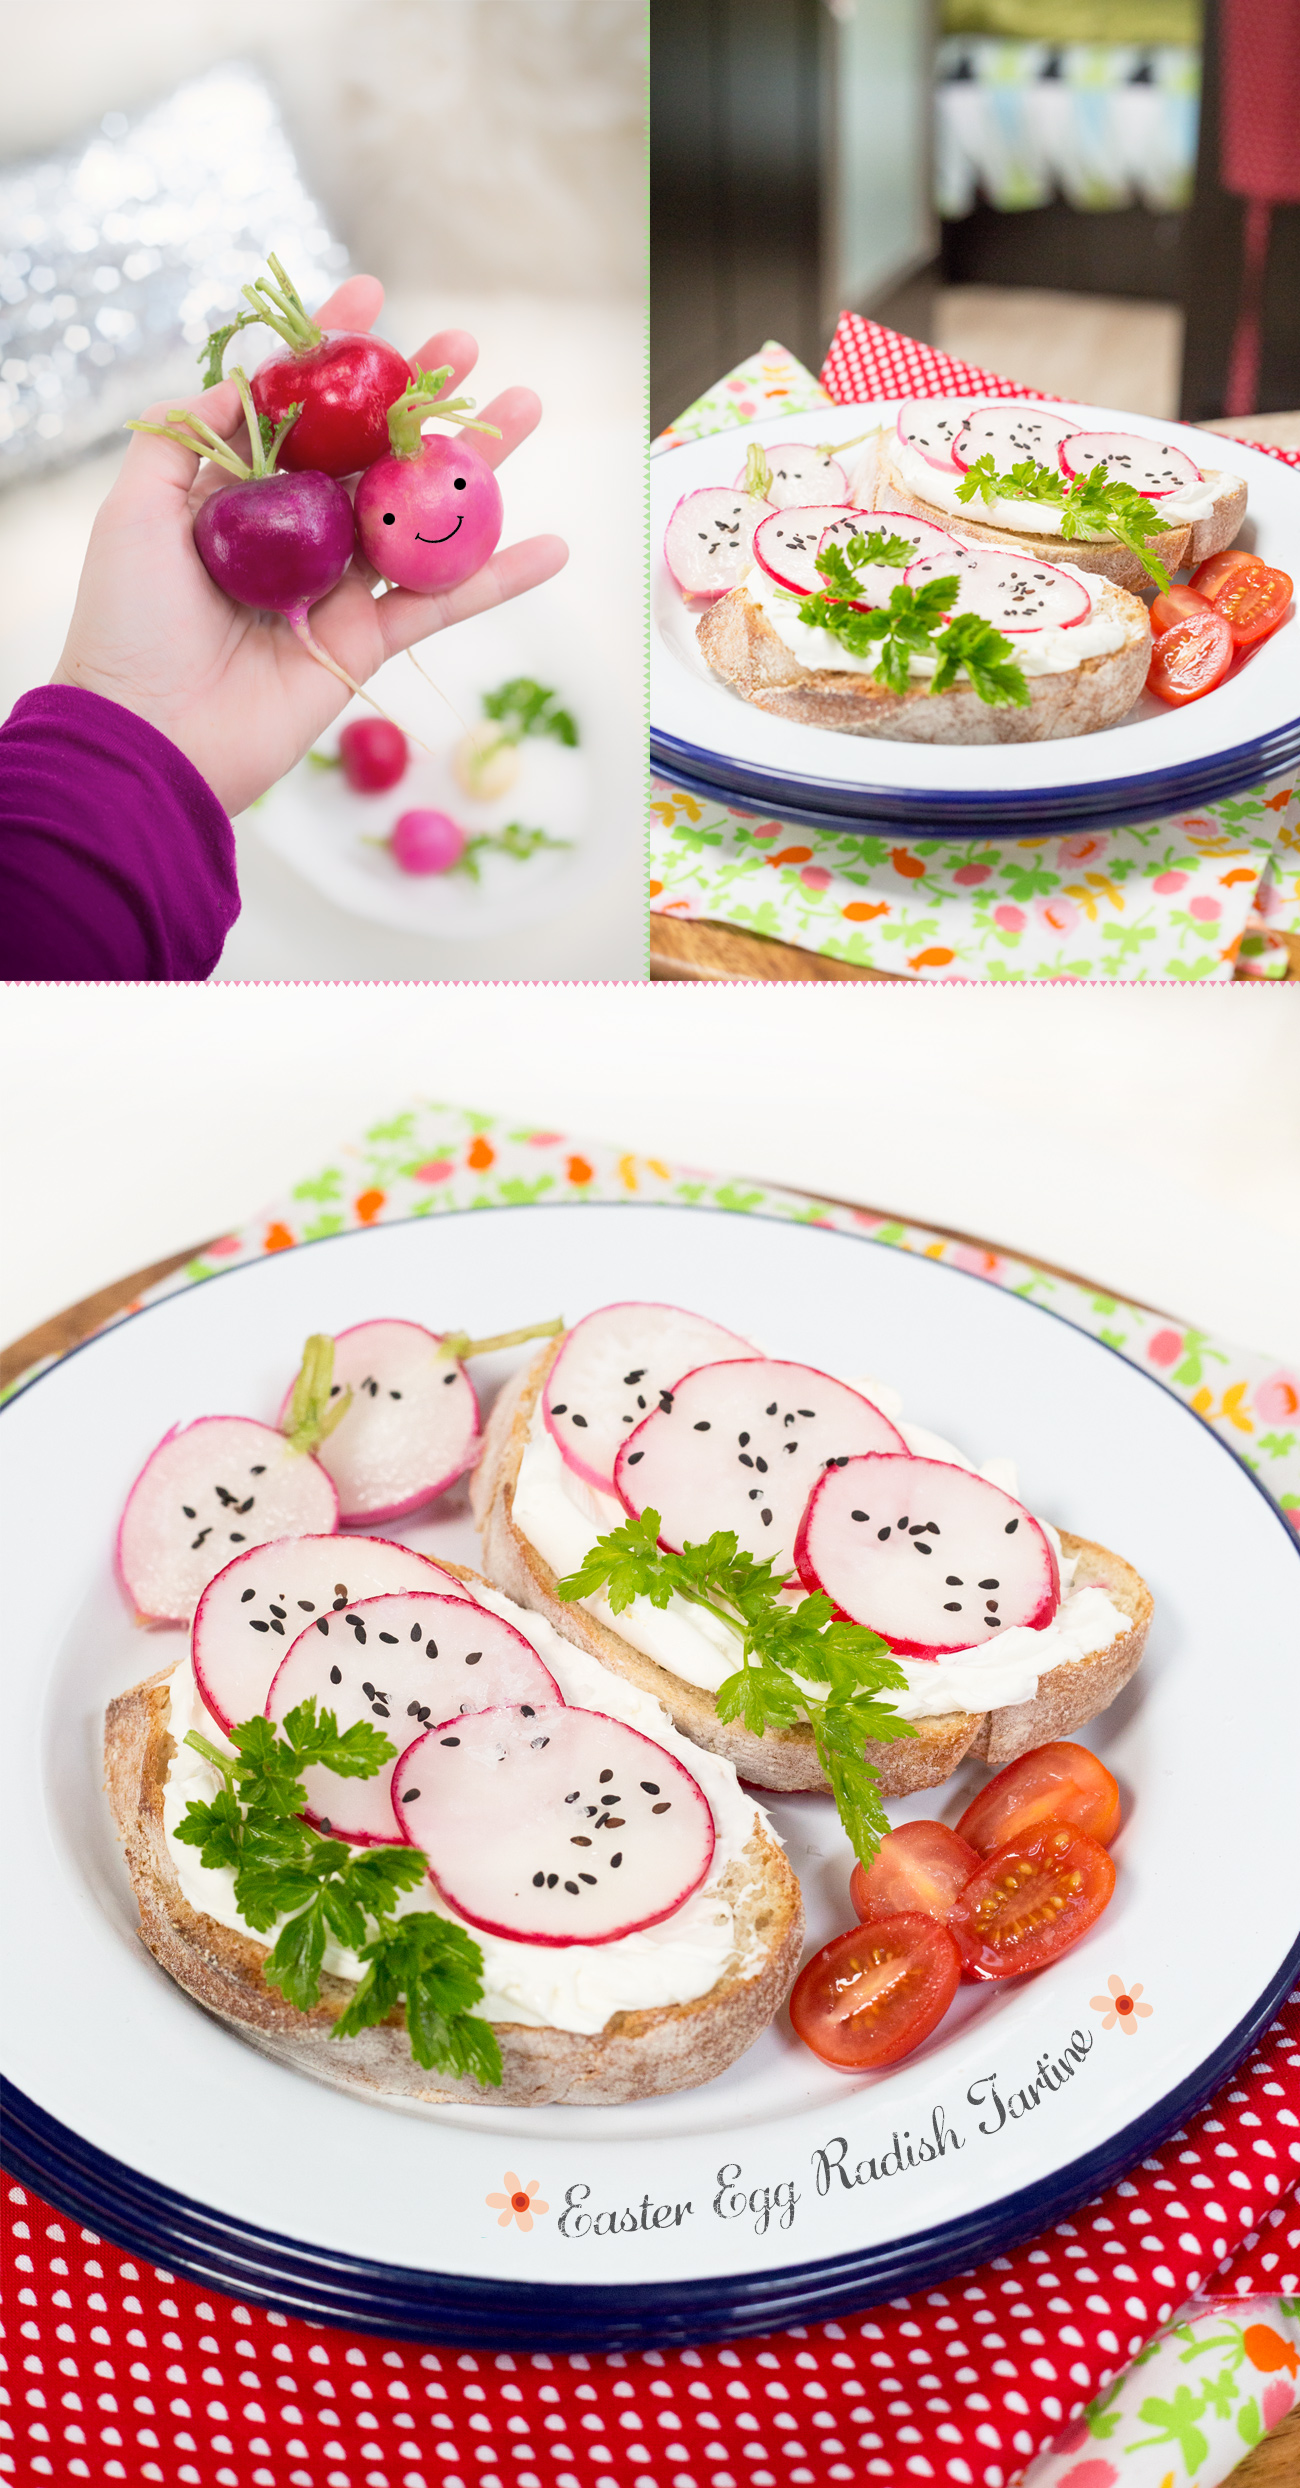 Easter Egg Radish Tartine via J5MM.com